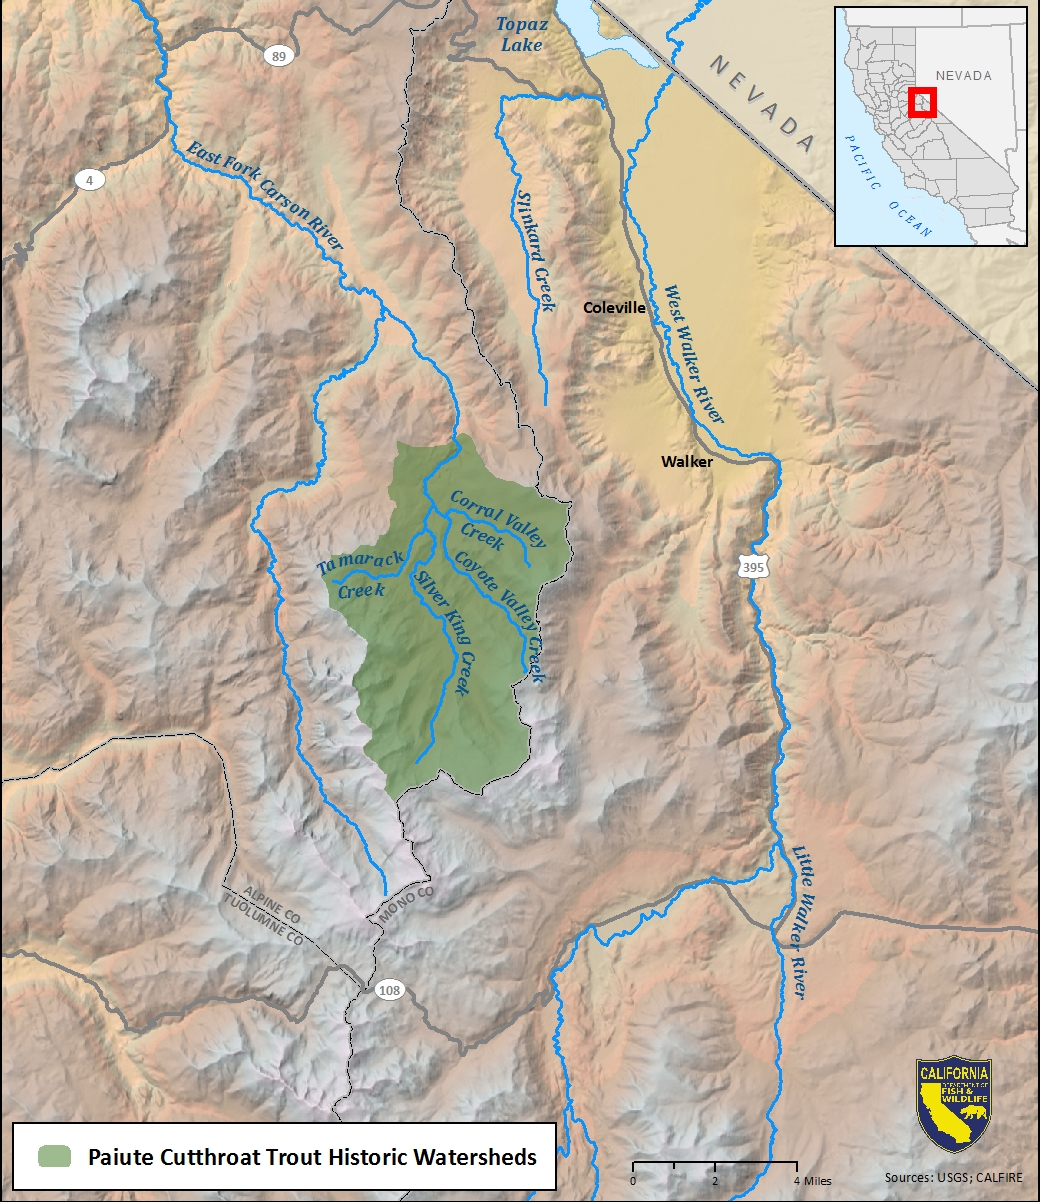 Map of Paiute cutthroat trout historic watershed-link opens in new window